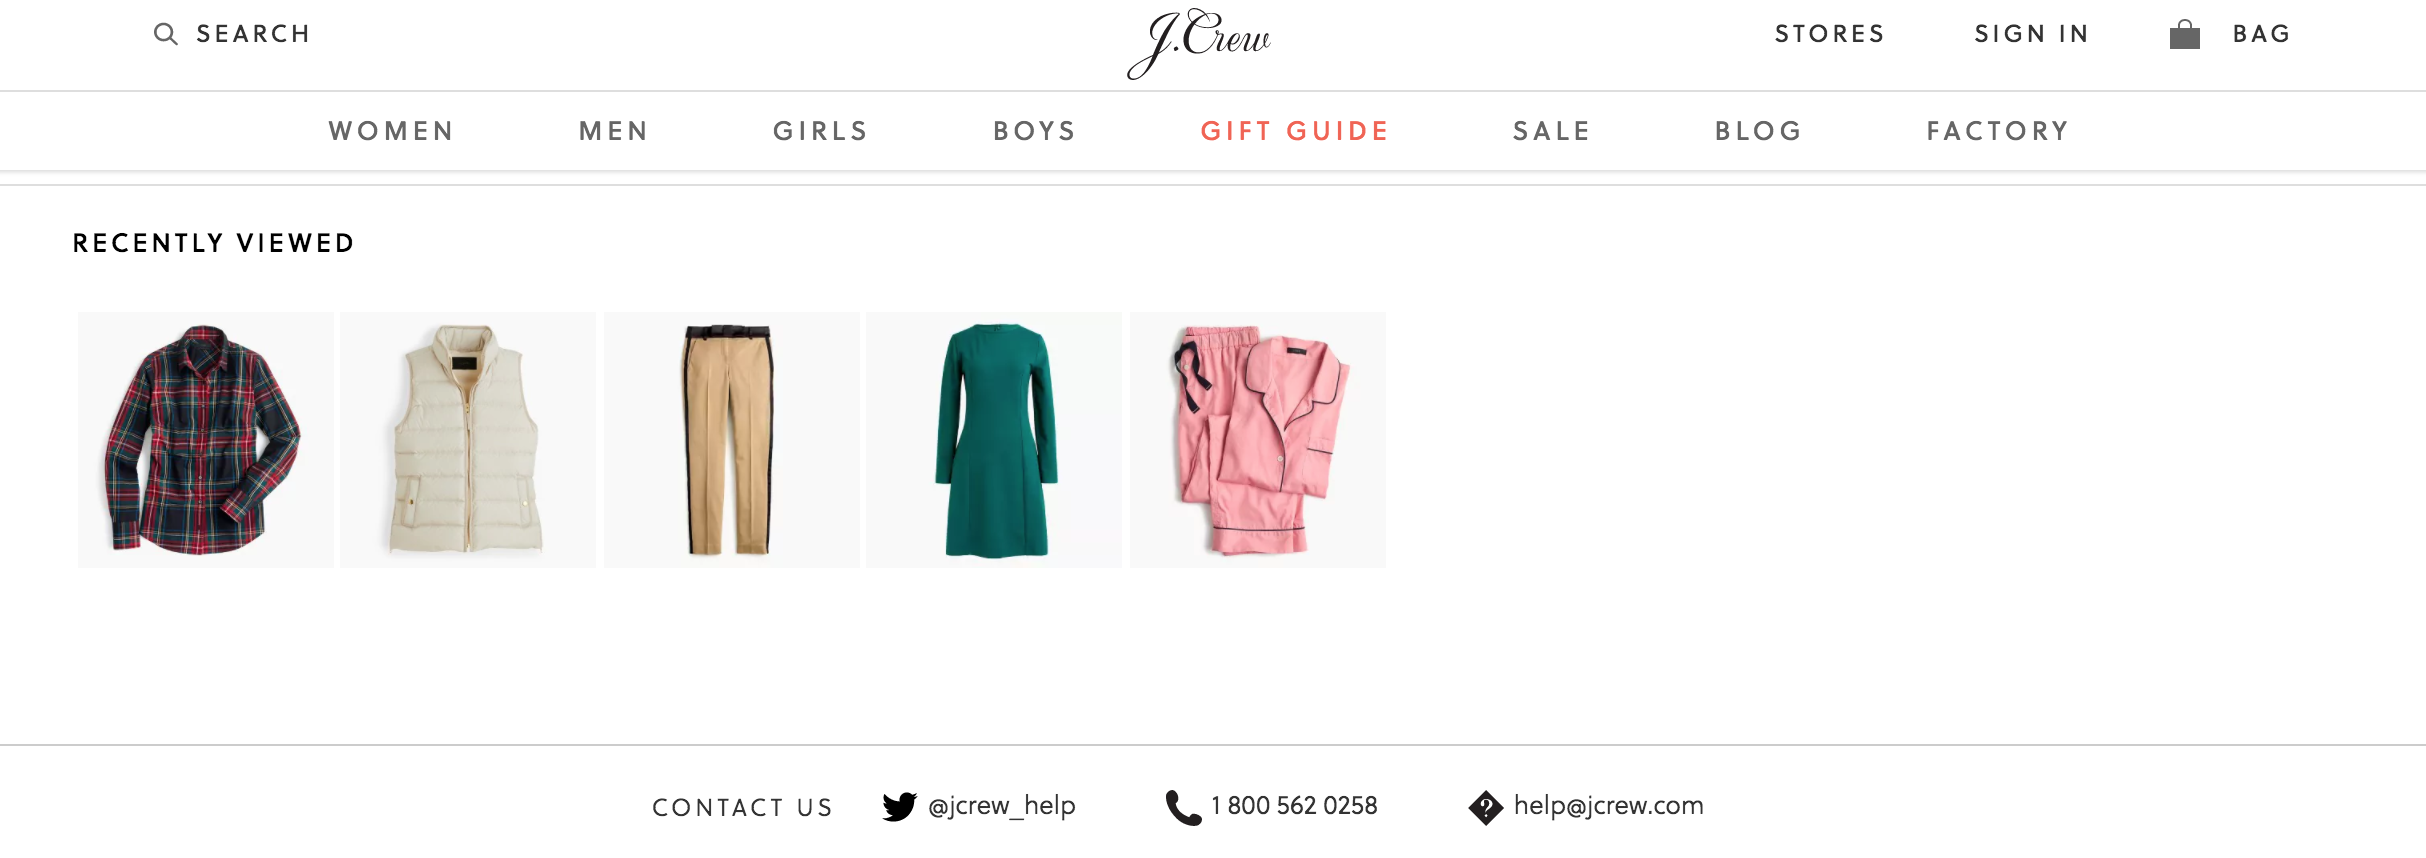 J. Crew's ecommerce product page trust signals